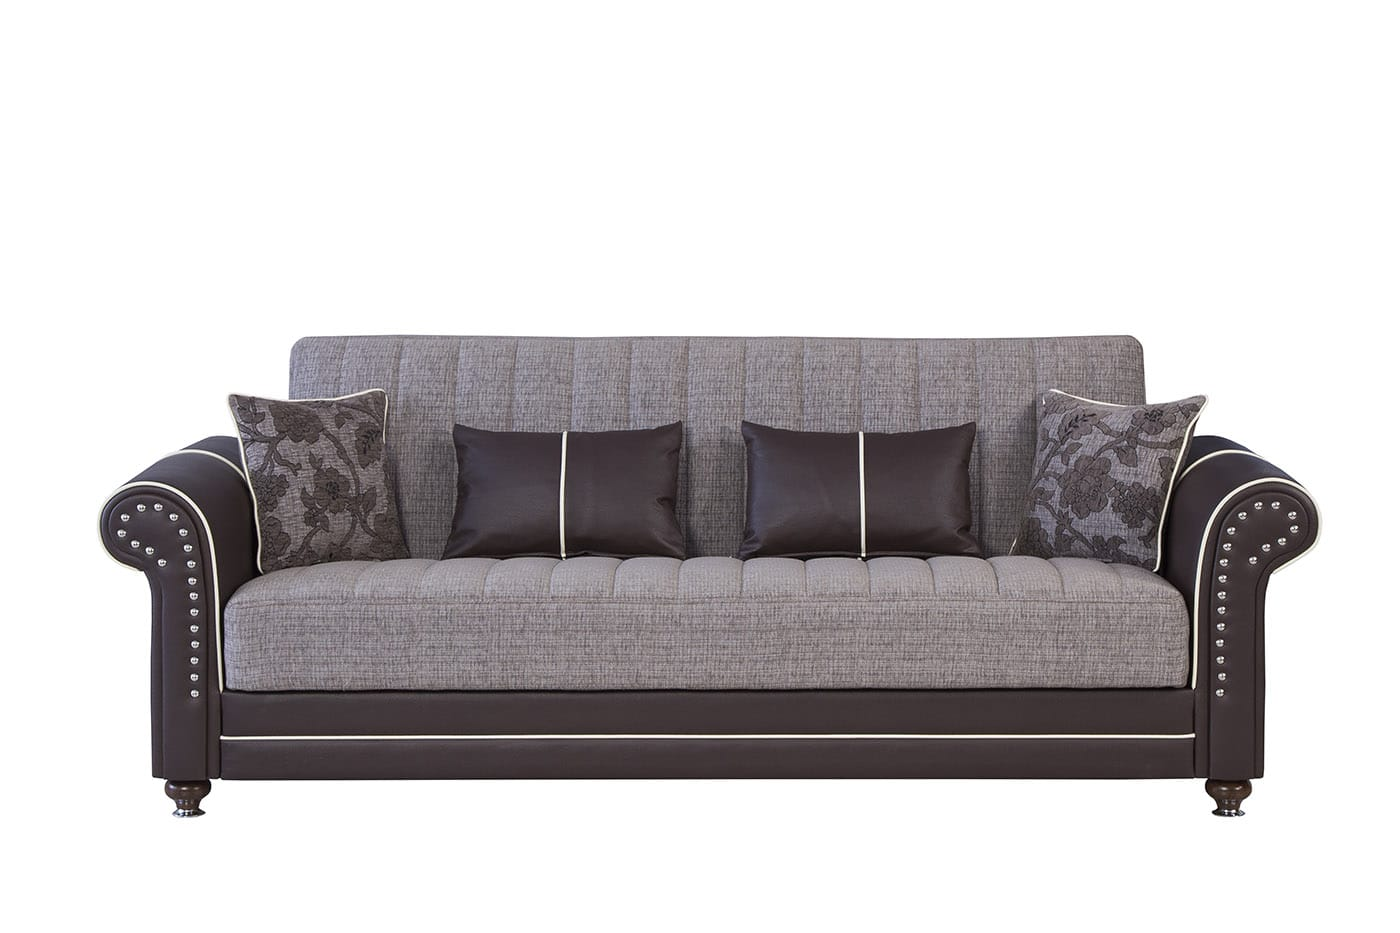 Royal Home Quantro Brown Convertible Sofa by Casamode